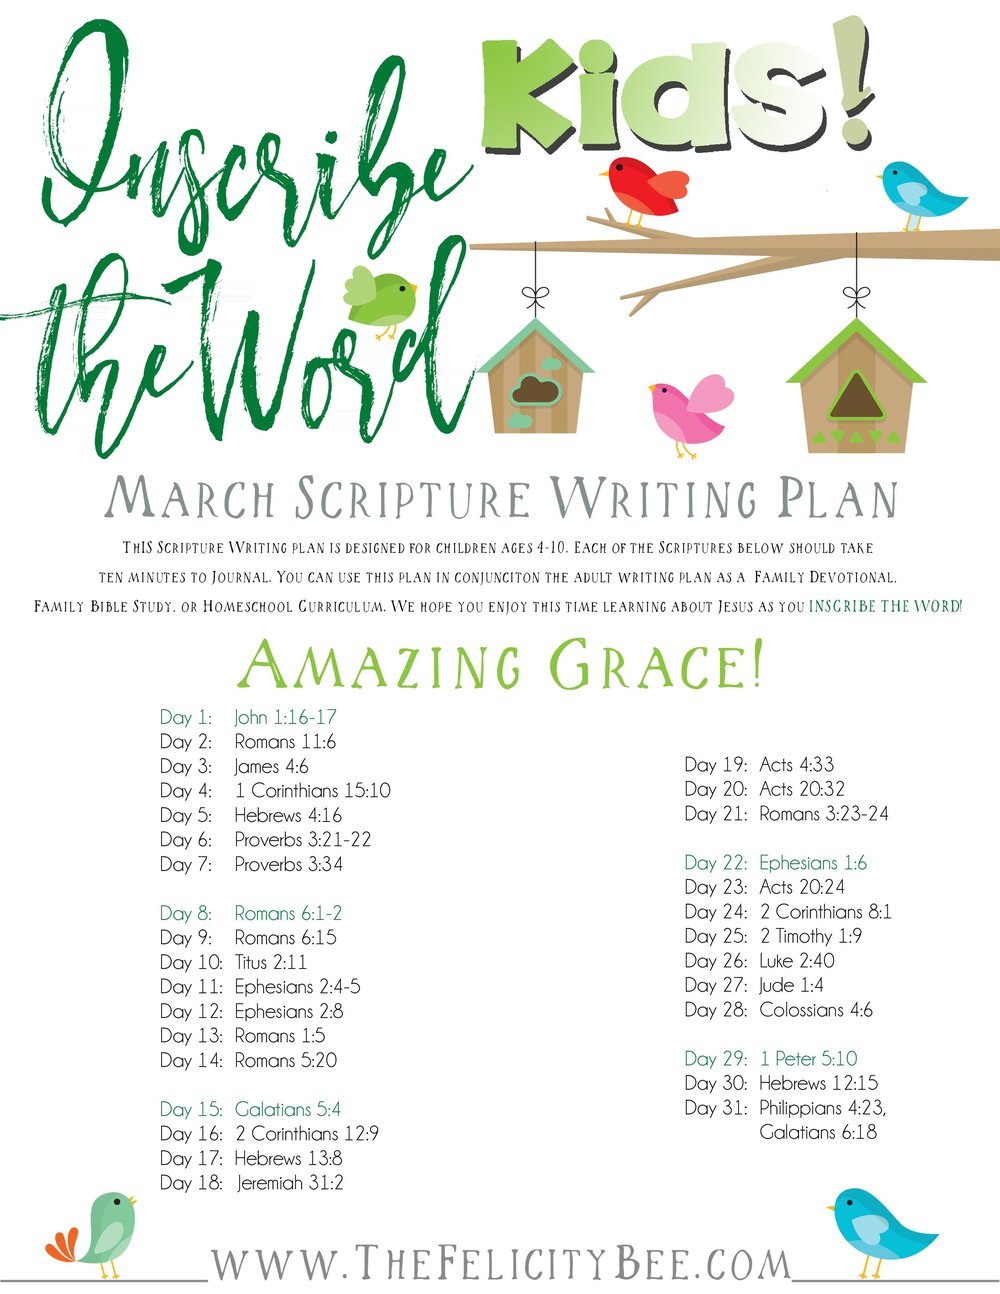 To download your Scripture Writing Plan, CLICK HERE.